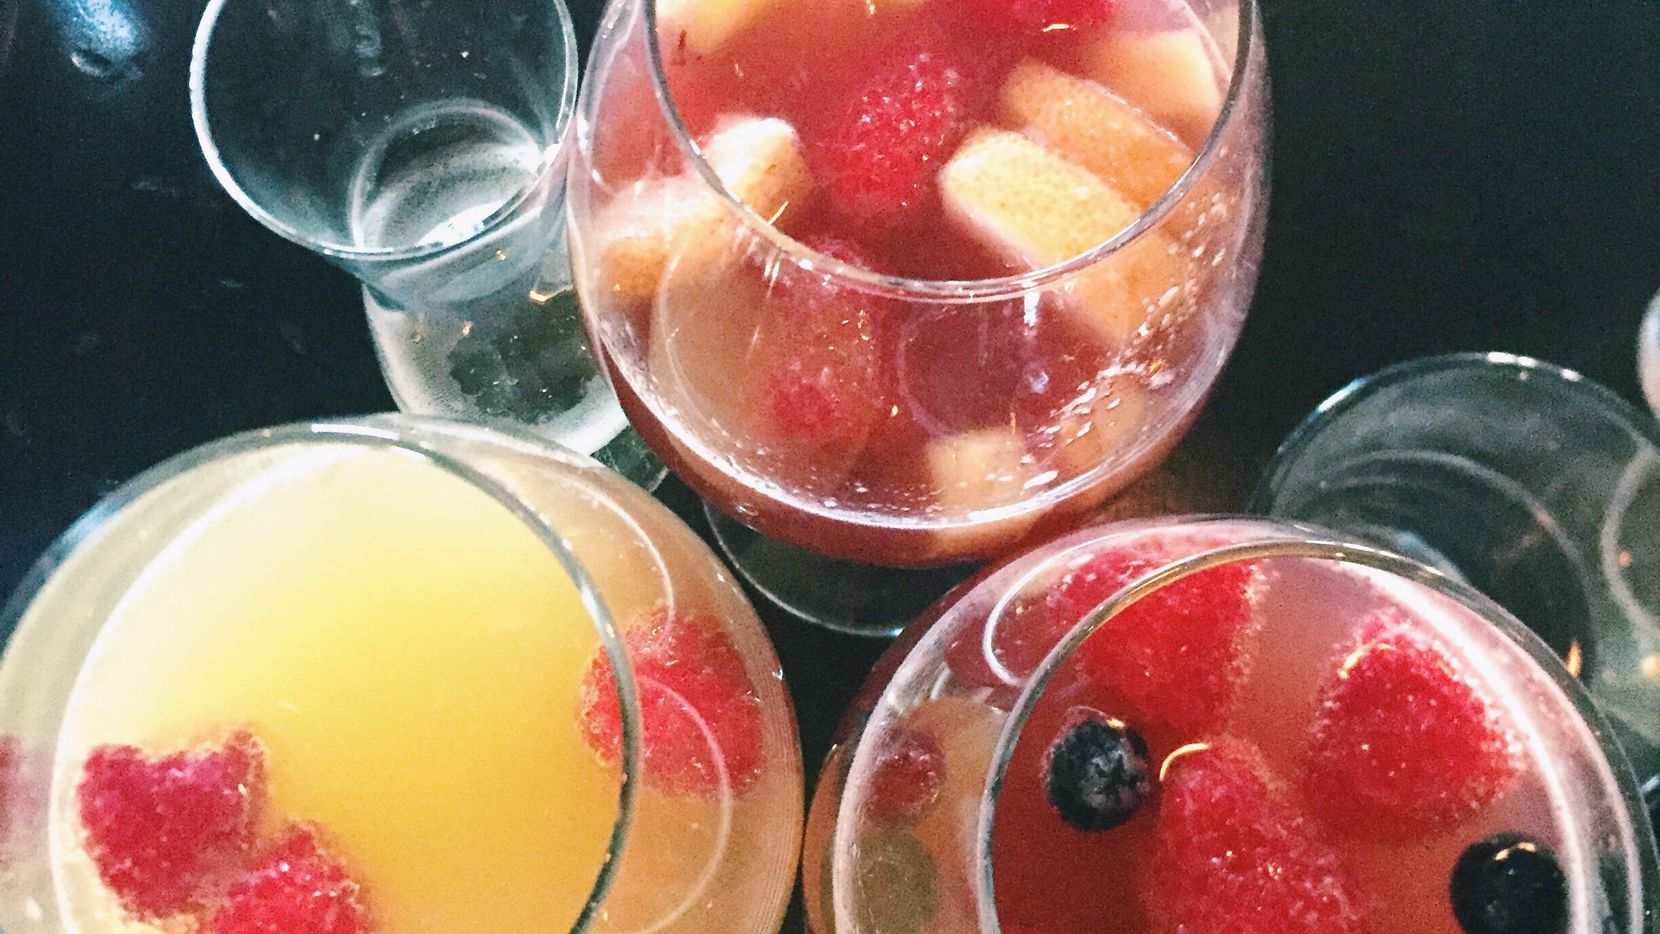 Every mimosa can be different when you customize your buzz at Henry's Majestic.